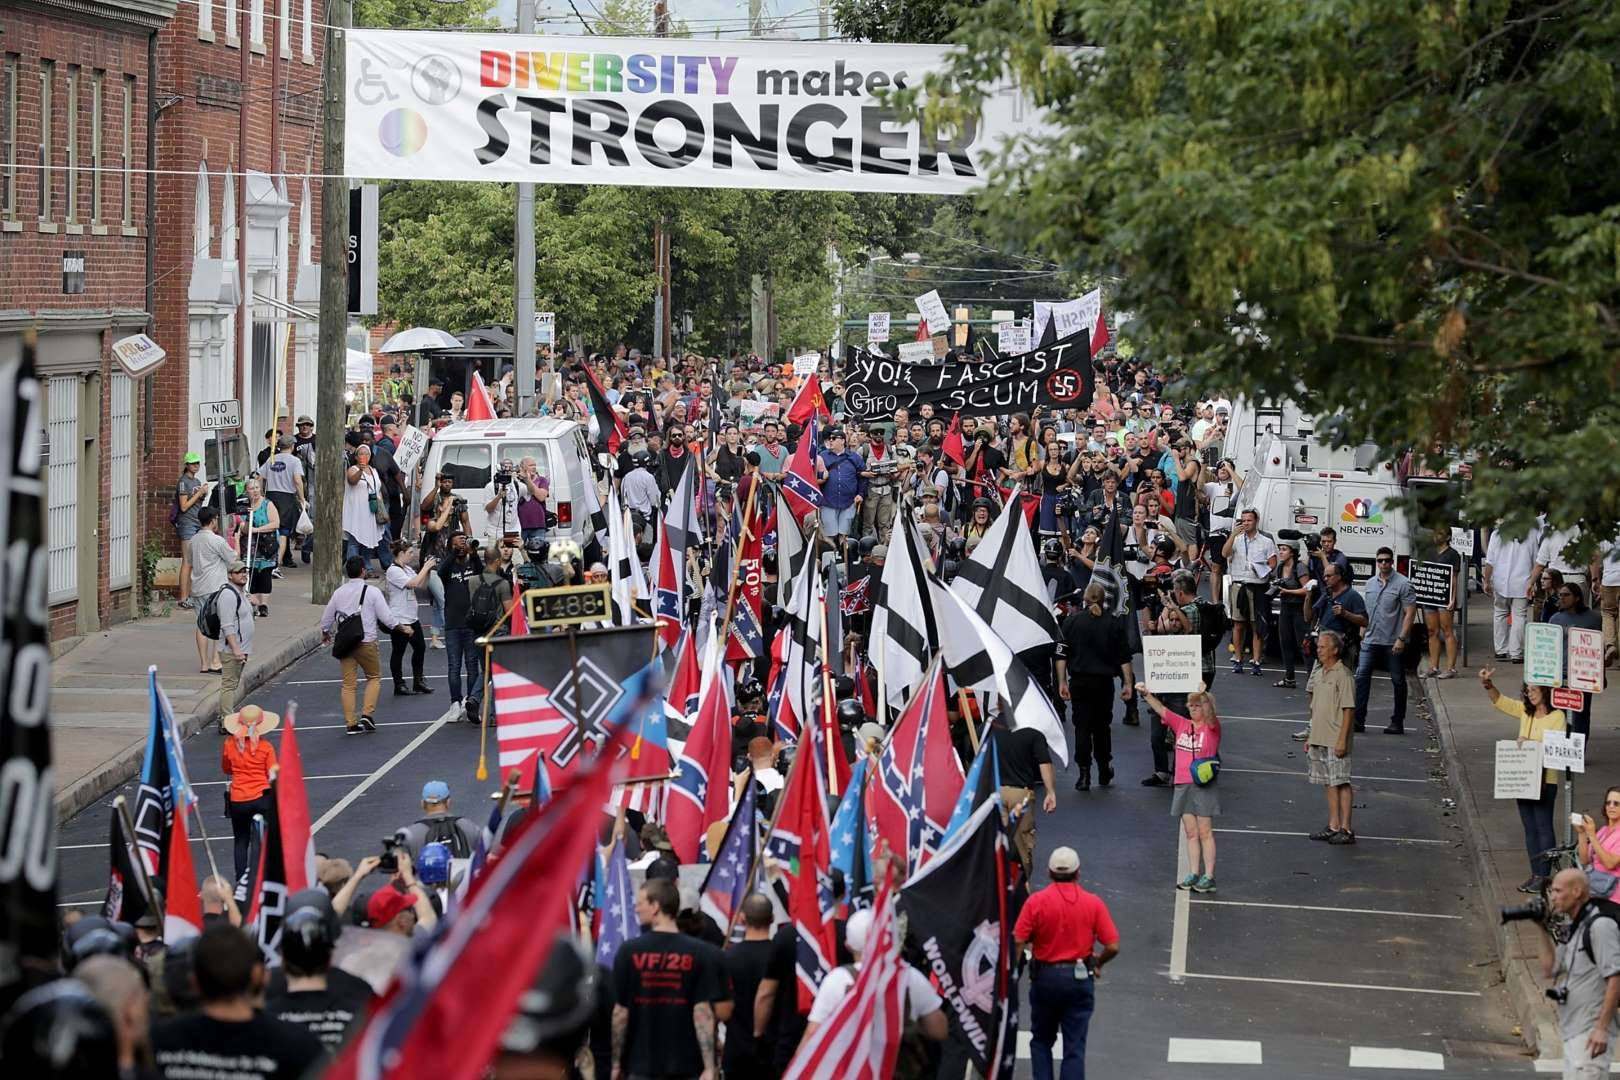 http://leagueofthesouth.com/wp-content/uploads/2017/08/LS-and-NF-allies-at-Lee-Park-Charlottesville-Aug-2017-rear-view-of-column.jpg